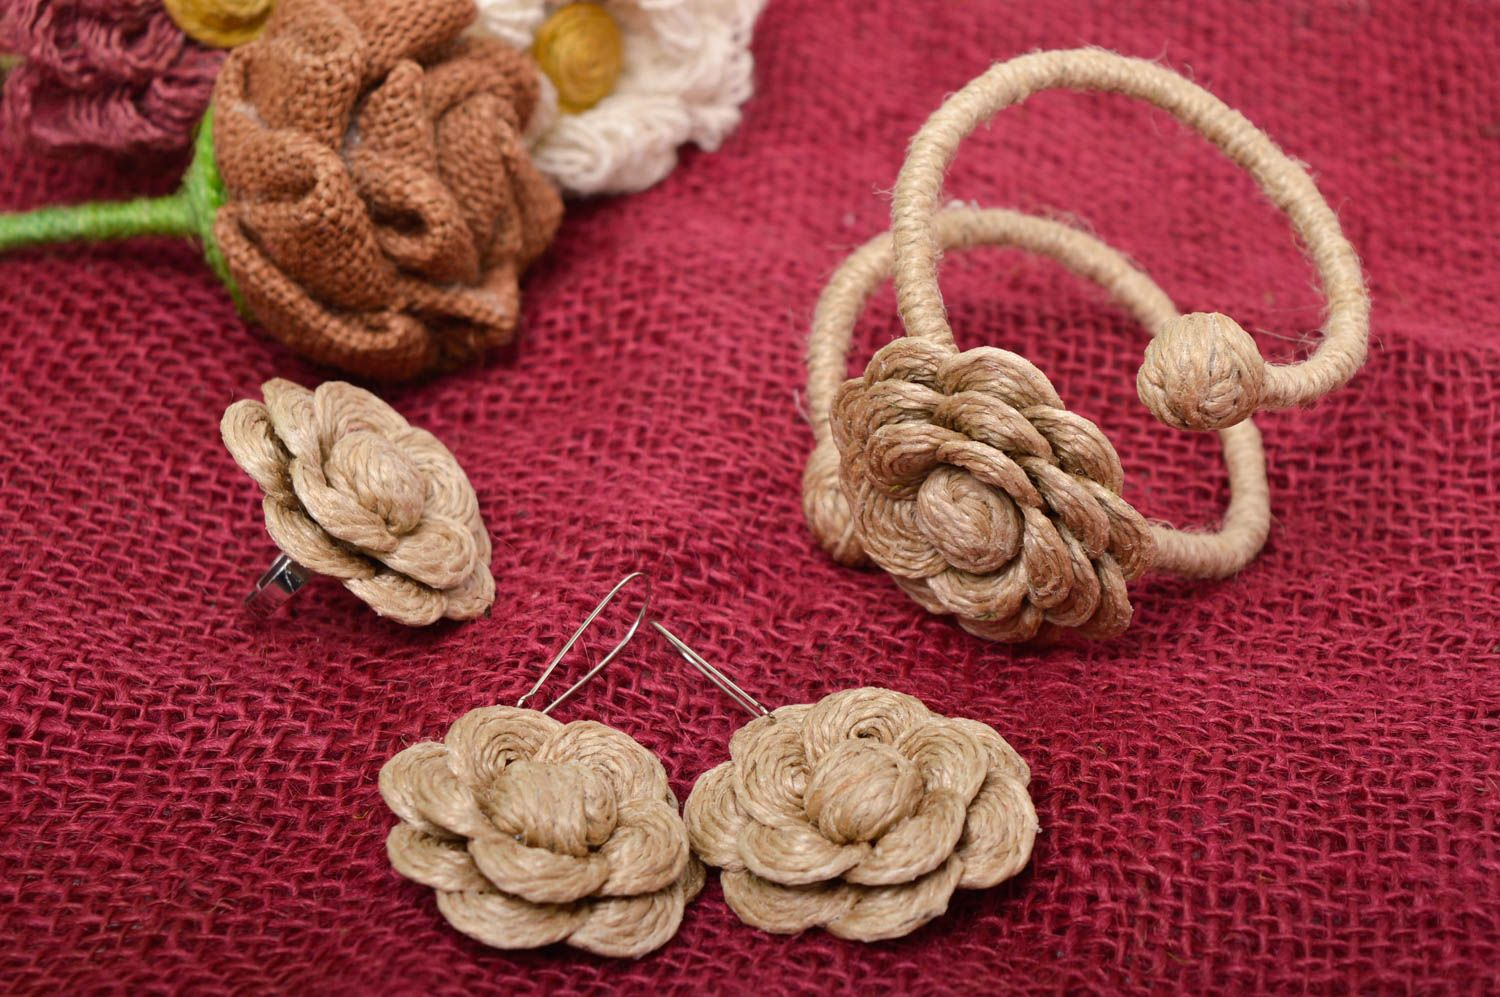 Unusual handmade cord jewelry set handmade earrings bracelet designs flower ring photo 1